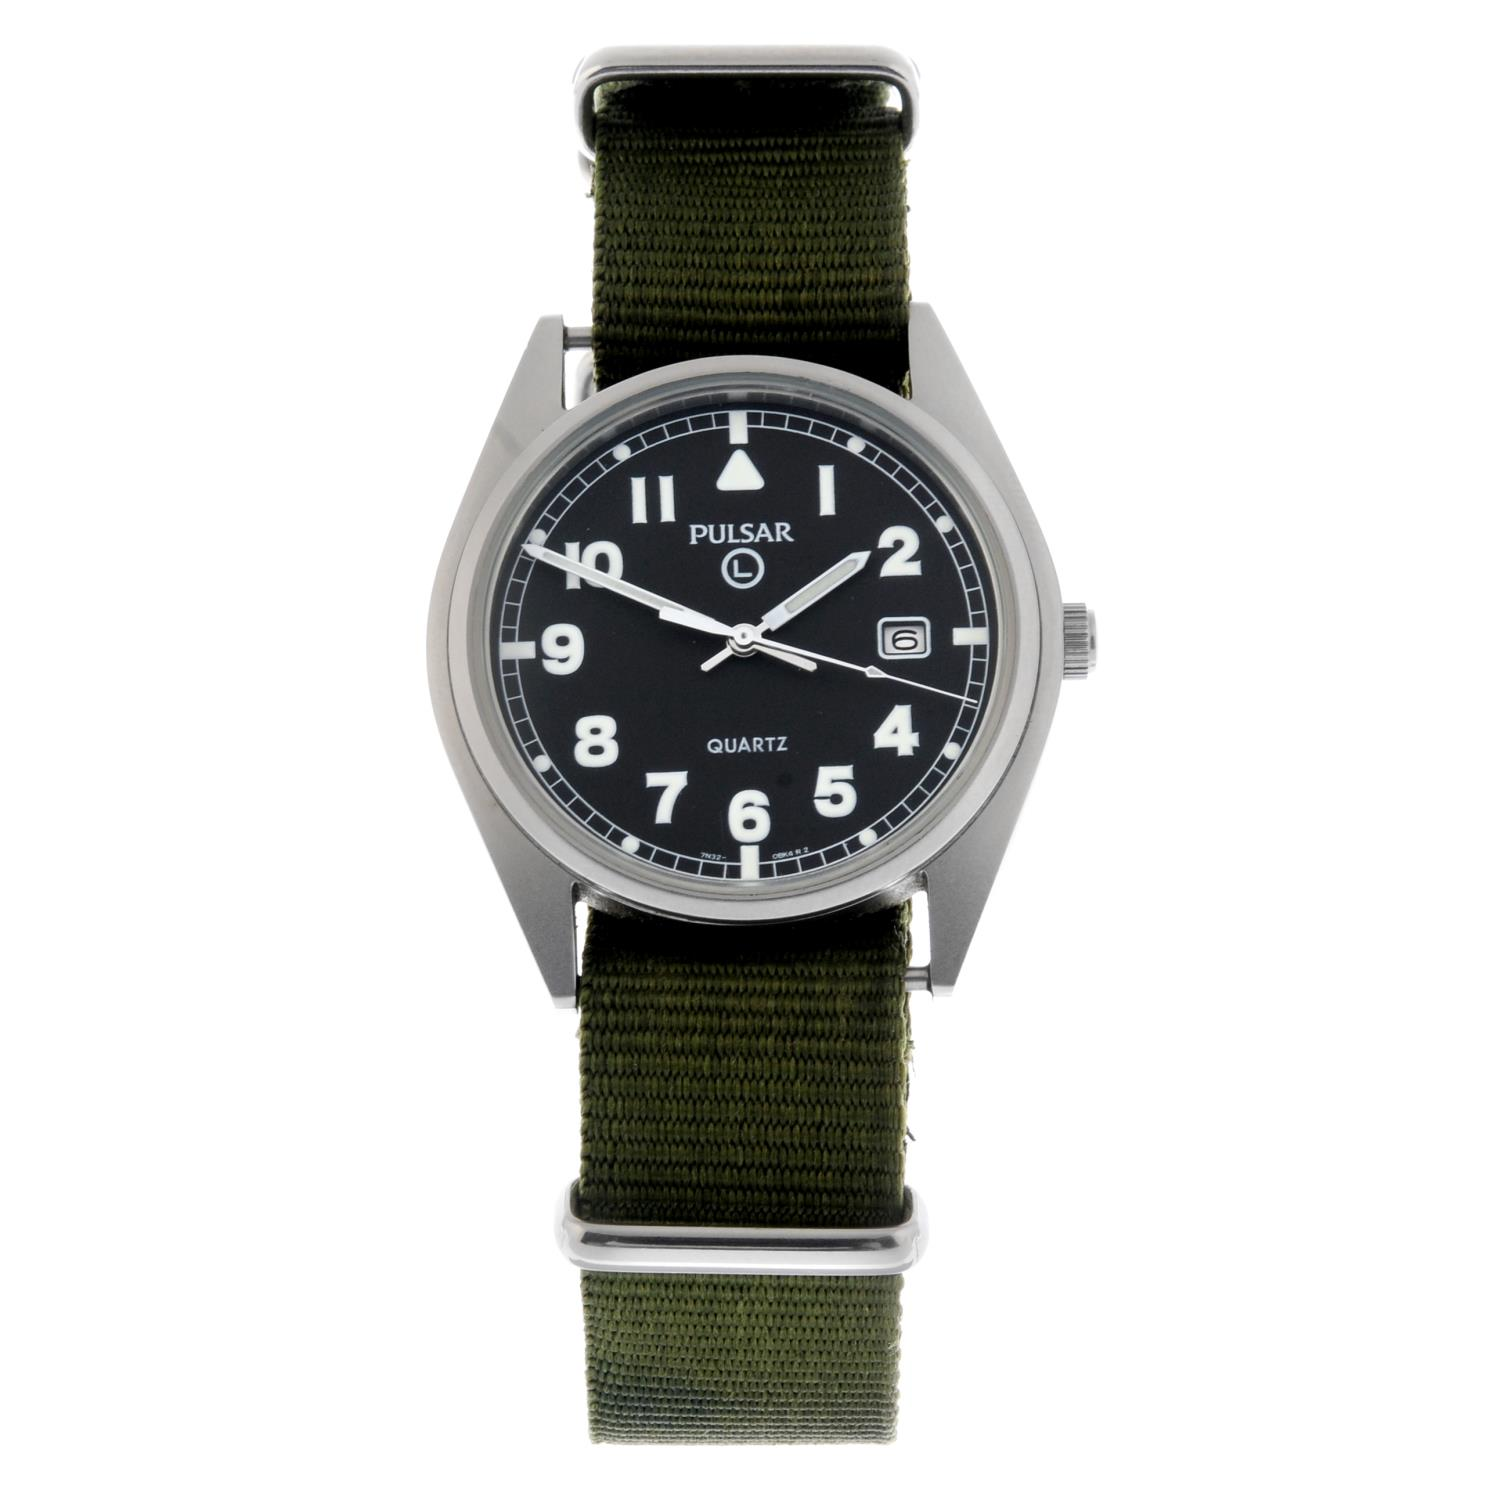 PULSAR - a military issue wrist watch,.